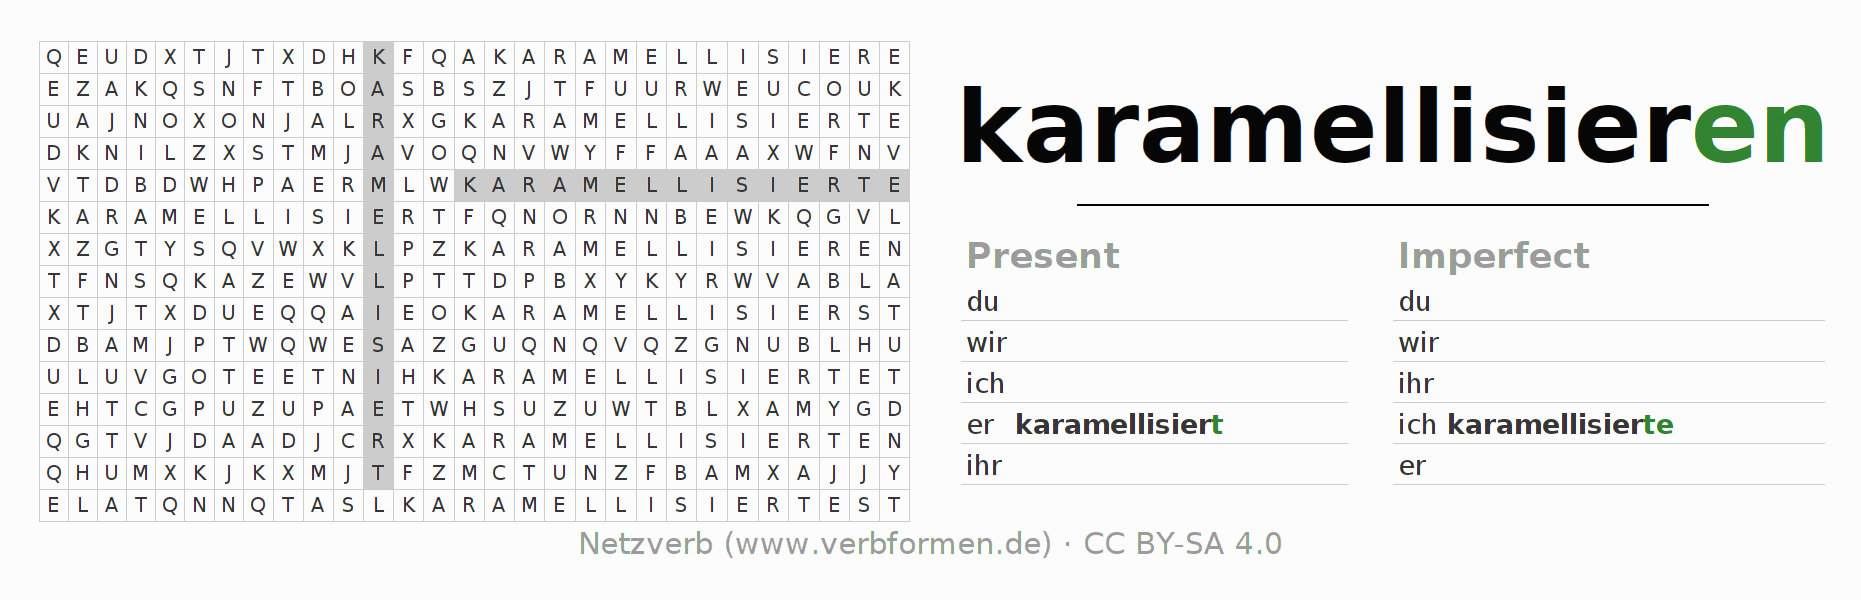 Word search puzzle for the conjugation of the verb karamellisieren